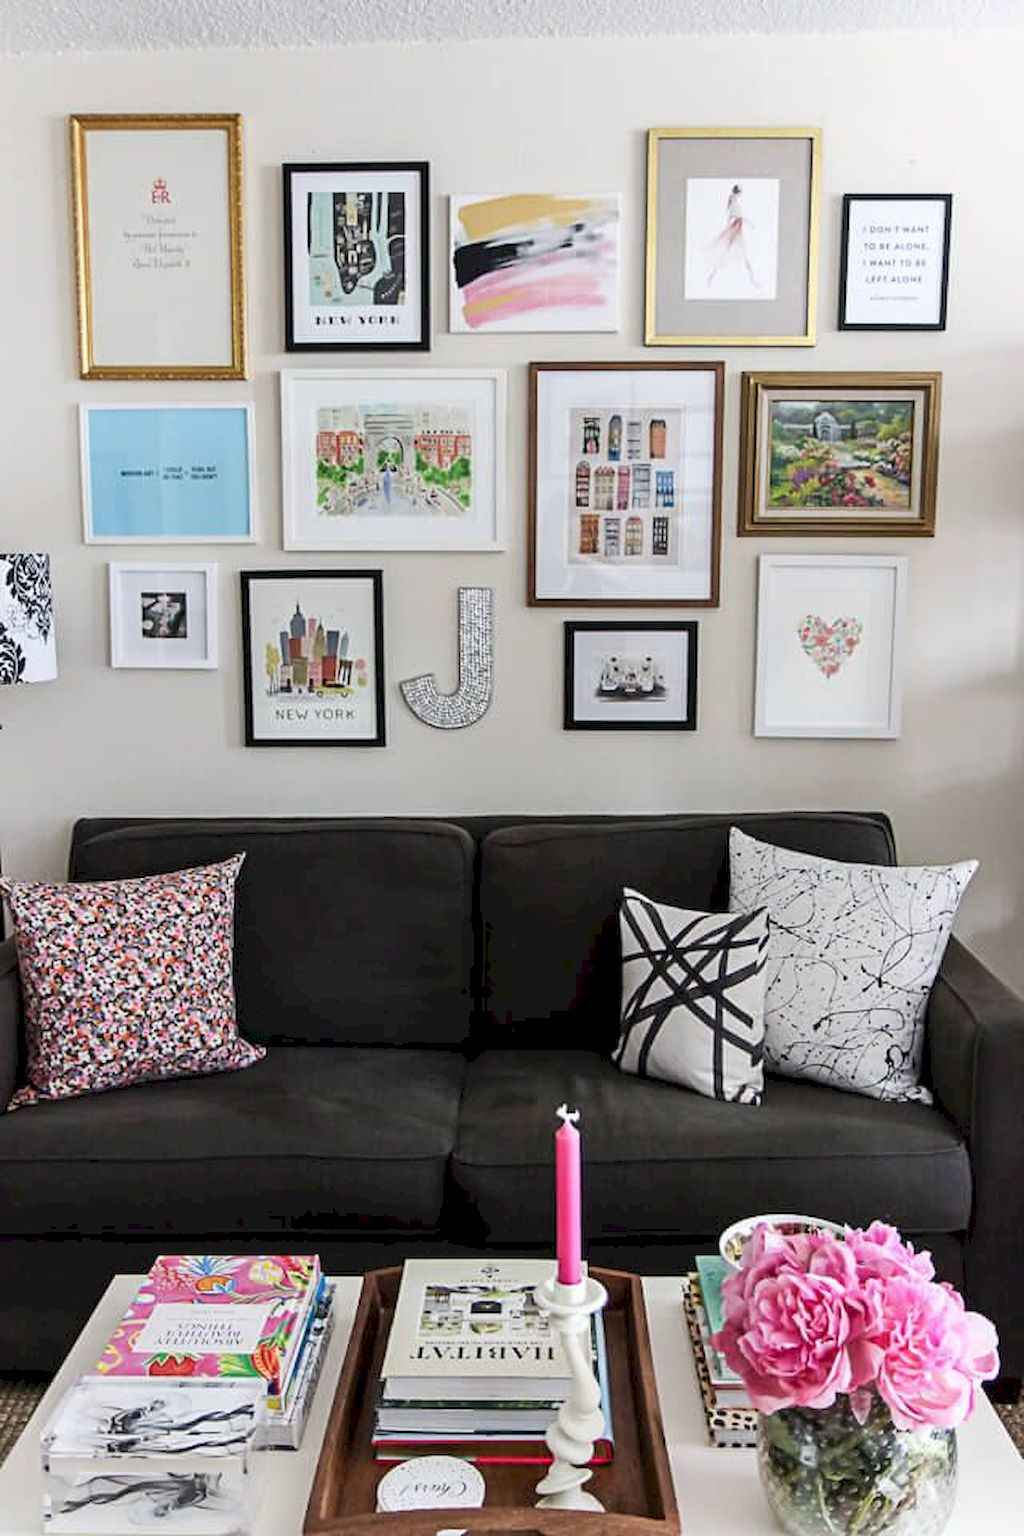 Clever college apartment decorating ideas on a budget (1)